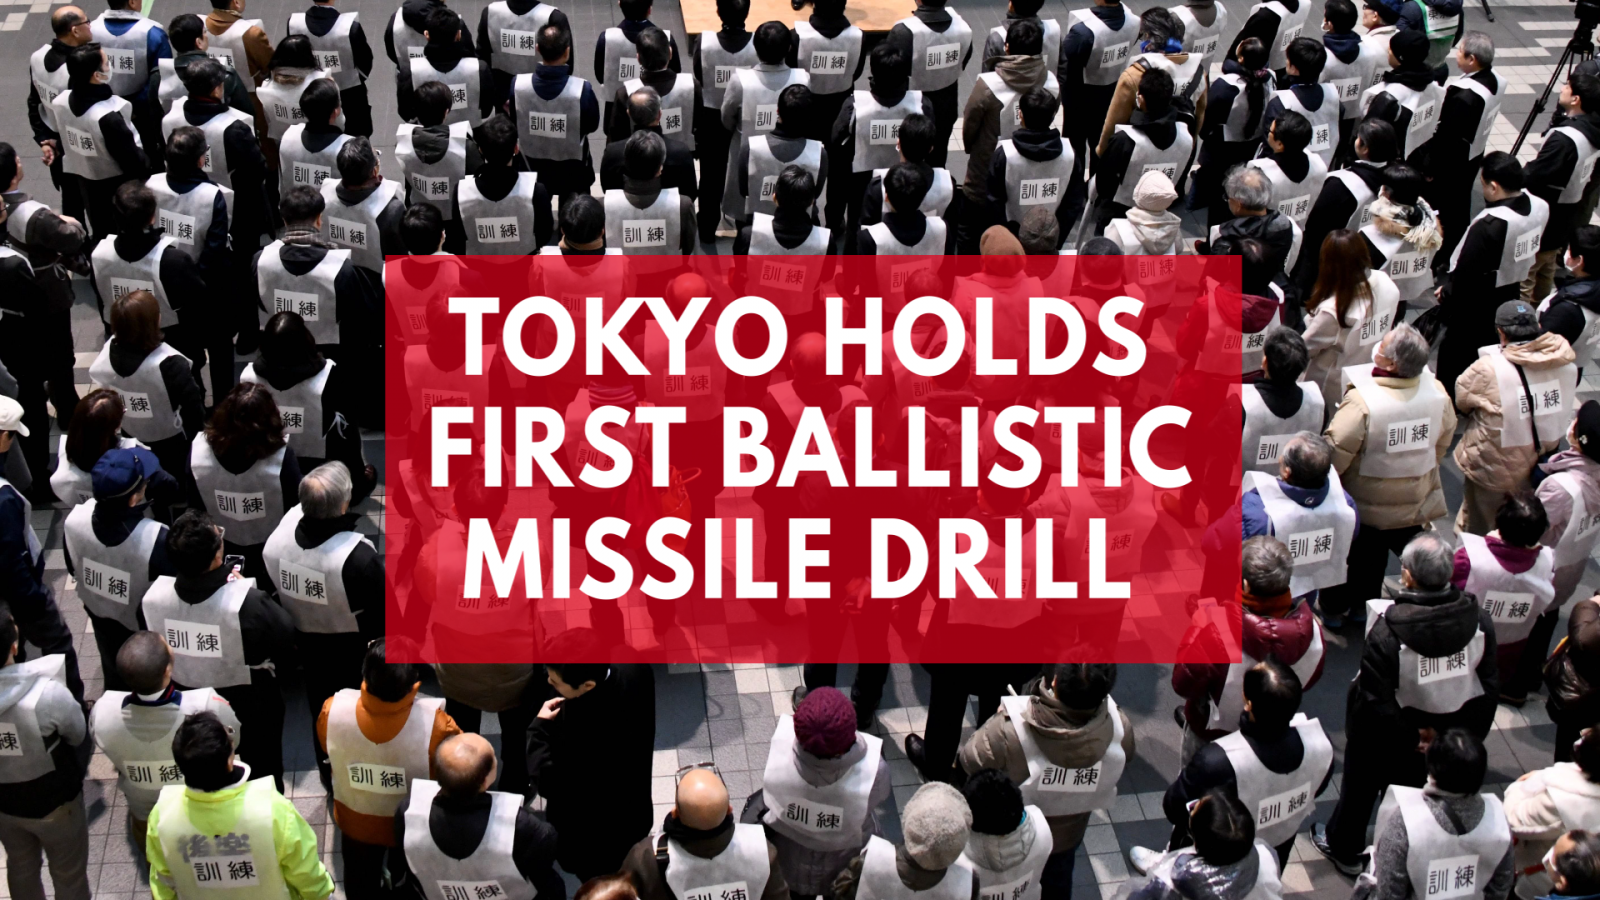 Tokyo prepares for nuclear war with drill amid tensions with North Korea